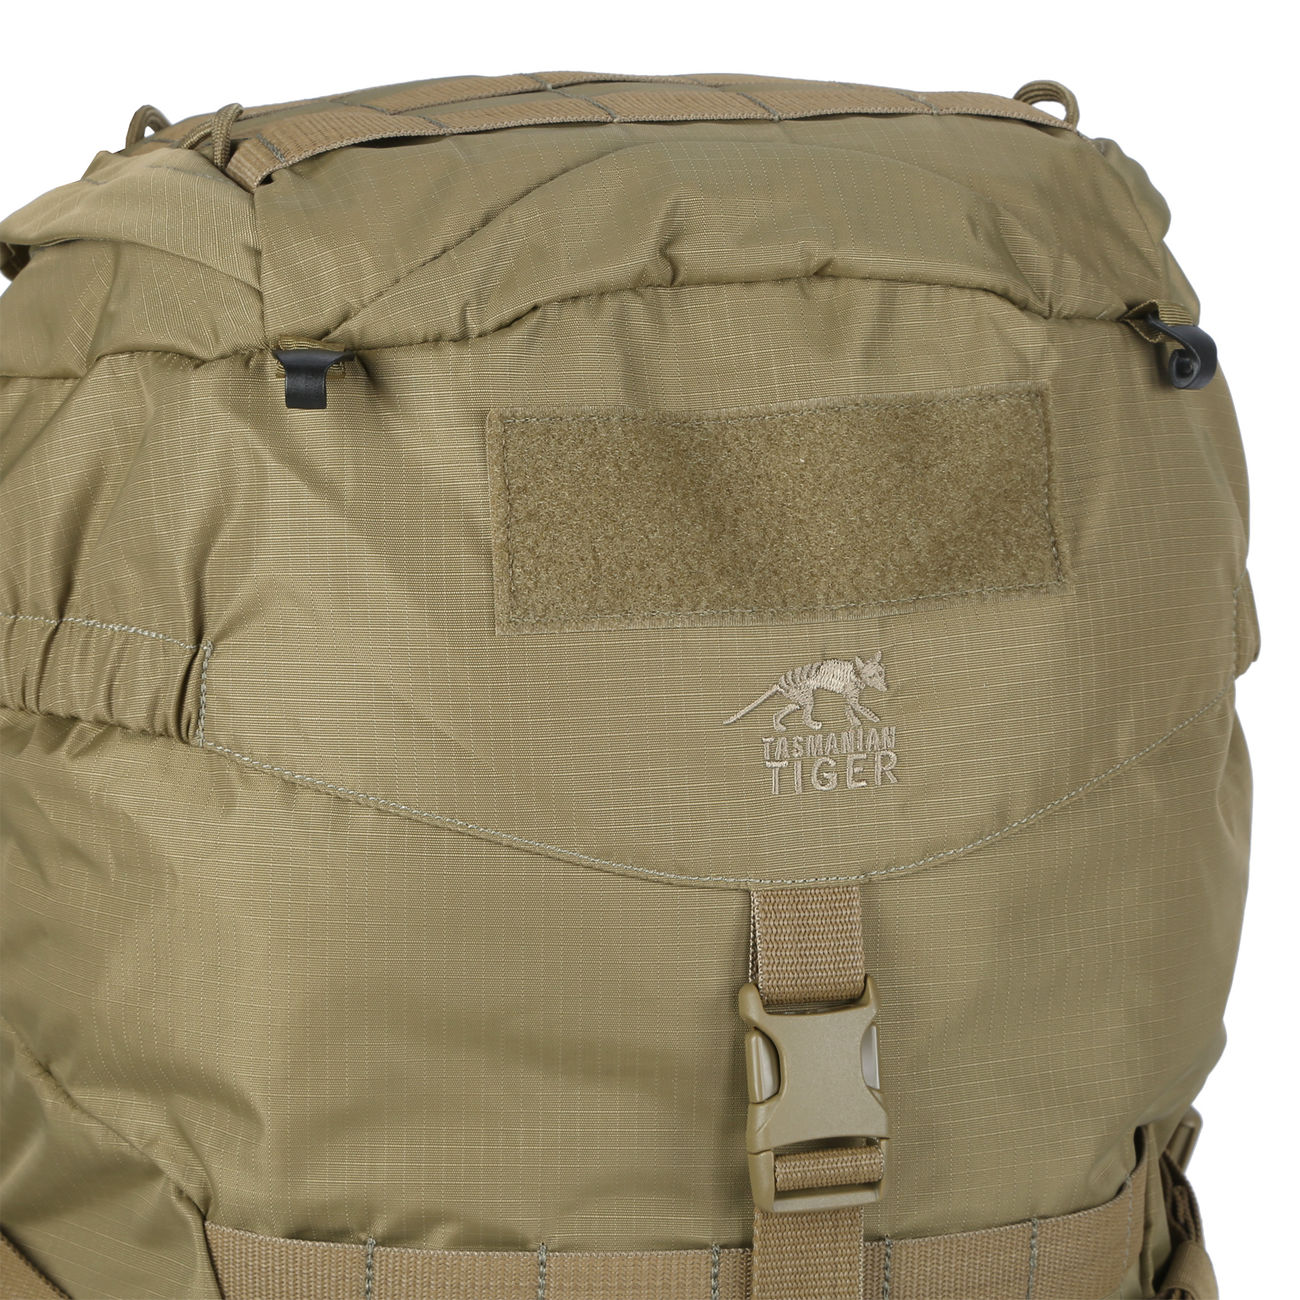 TT Rucksack Trooper Light Pack 35 khaki 7